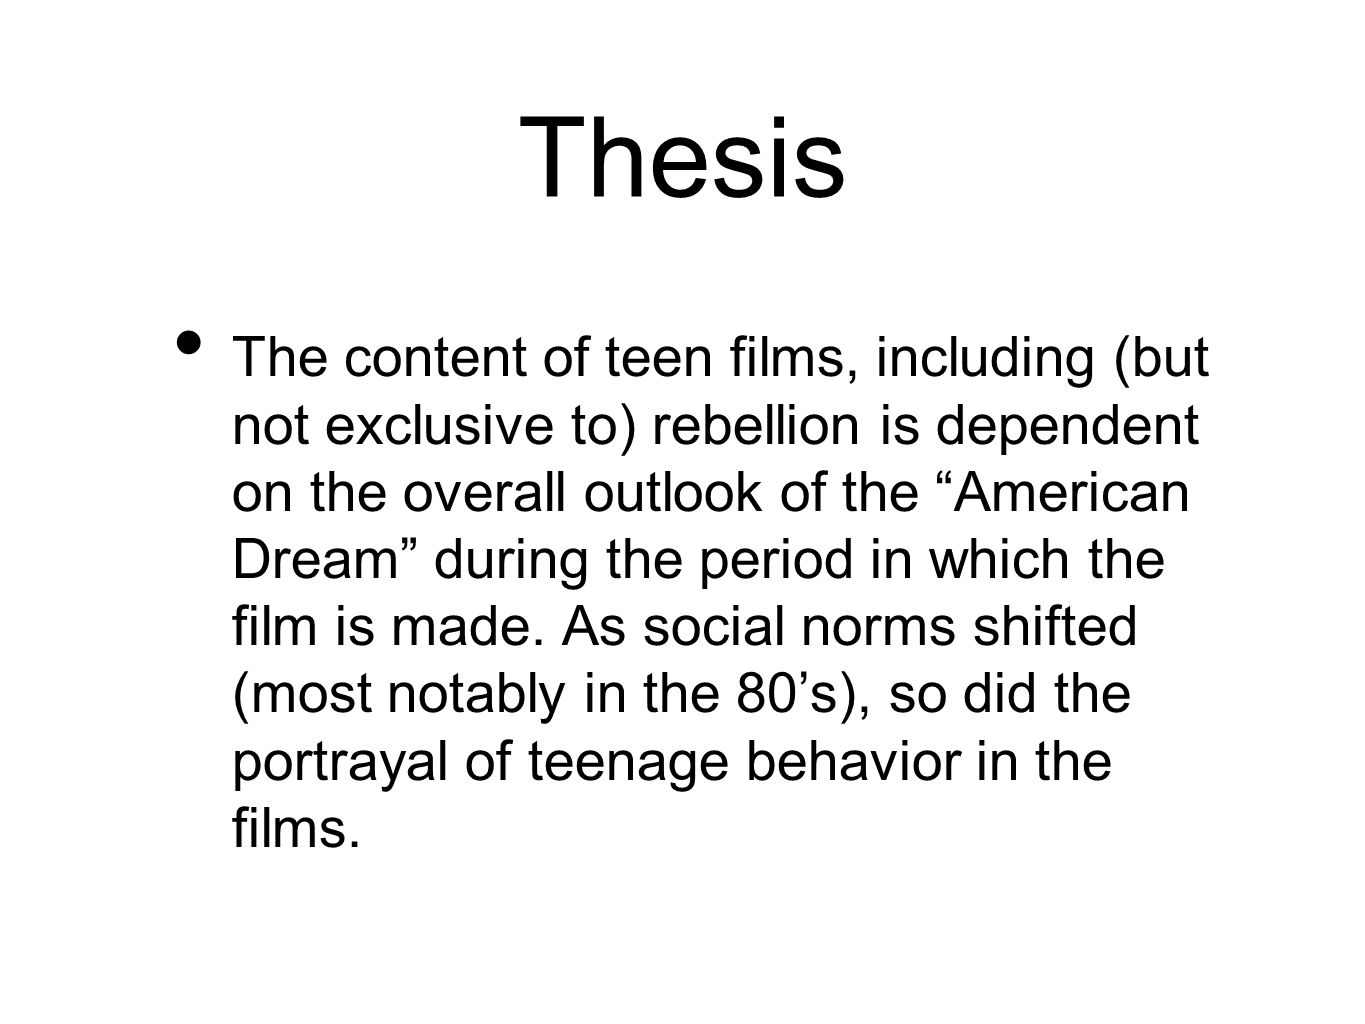 Thesis The content of teen films, including (but not exclusive to) rebellion is dependent on the overall outlook of the American Dream during the period in which the film is made.